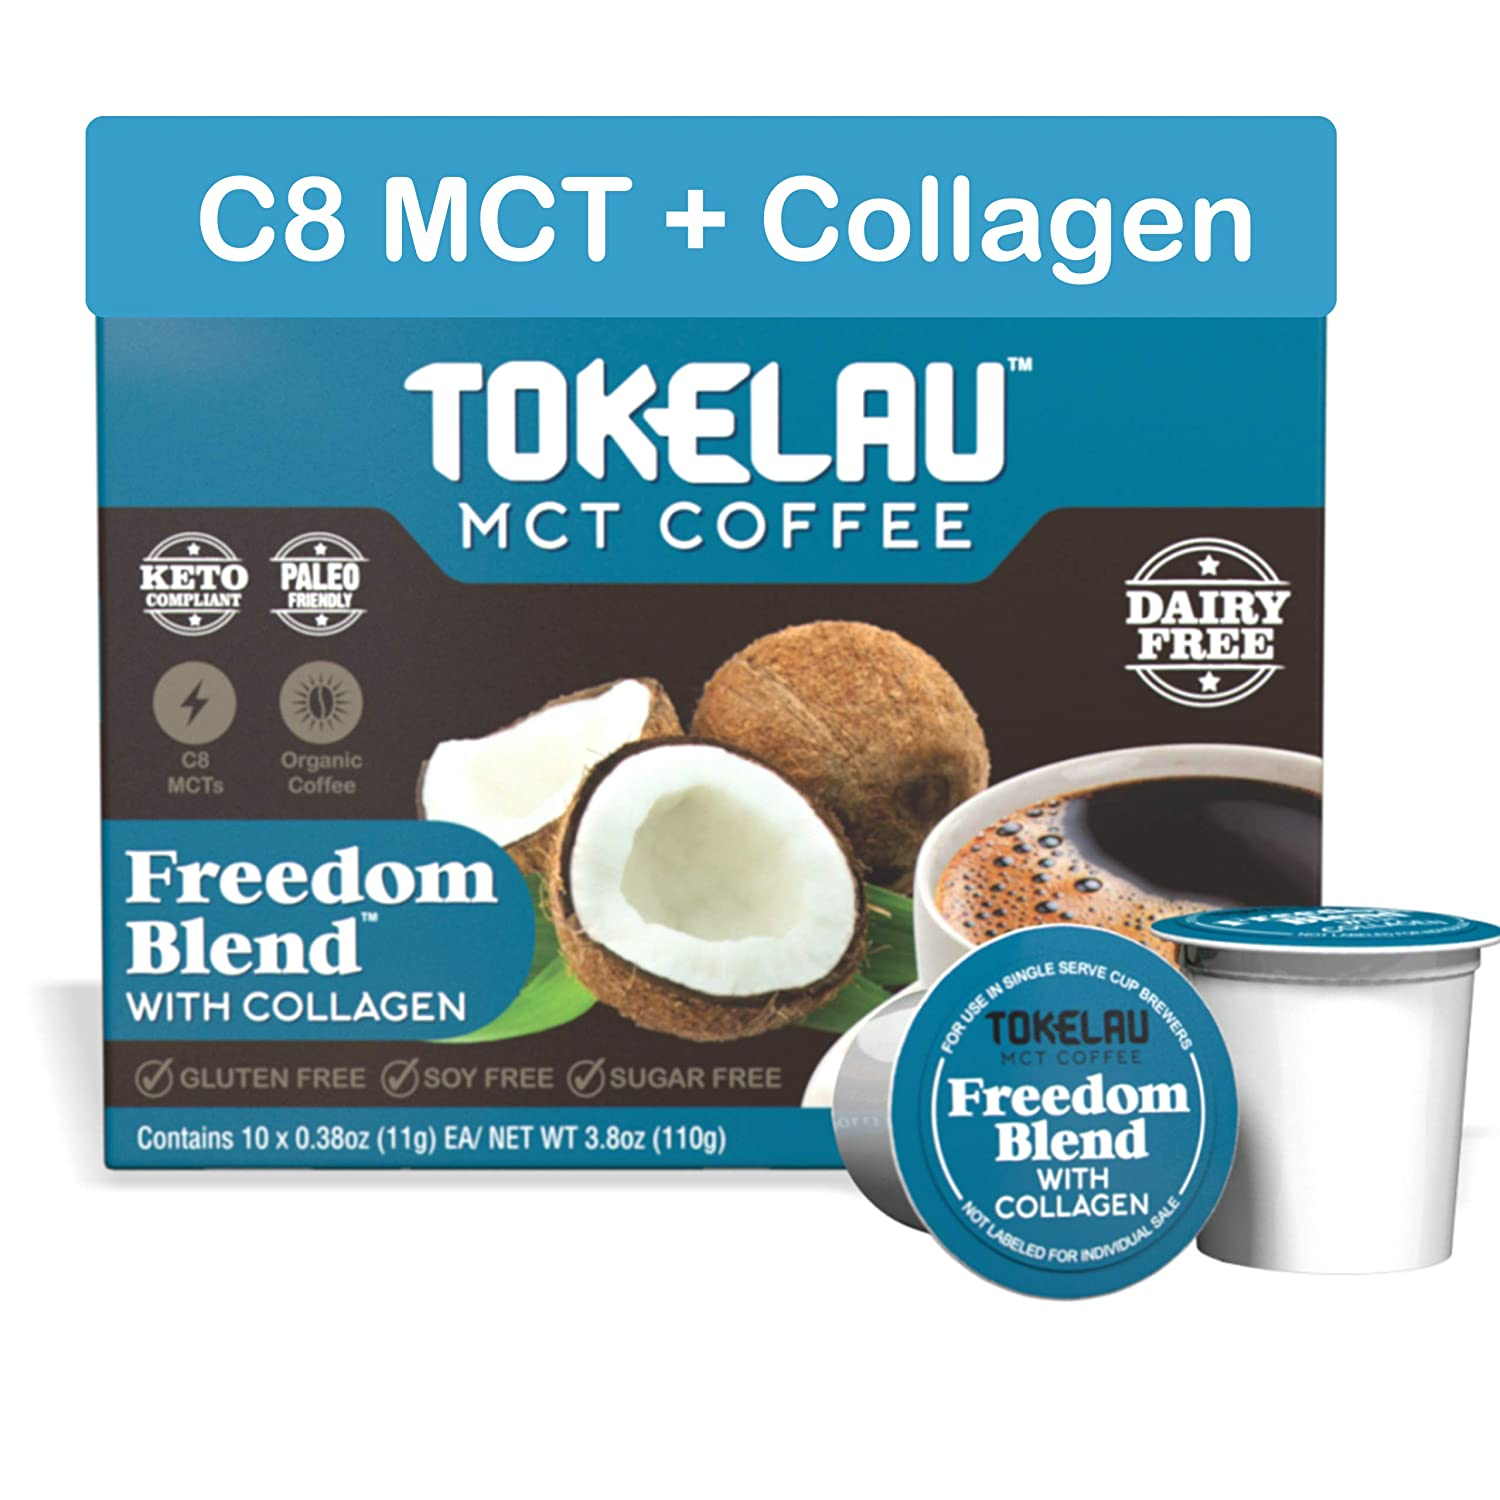 Tokelau Keto Coffee Pods for Keurig Style Brewers. Organic Ketogenic Coffee Pods with C8 MCT Oil and Collagen. Get Into Ketosis Fast and Burn Fat for Fuel. Sugar-Free and 100% Dairy Free.